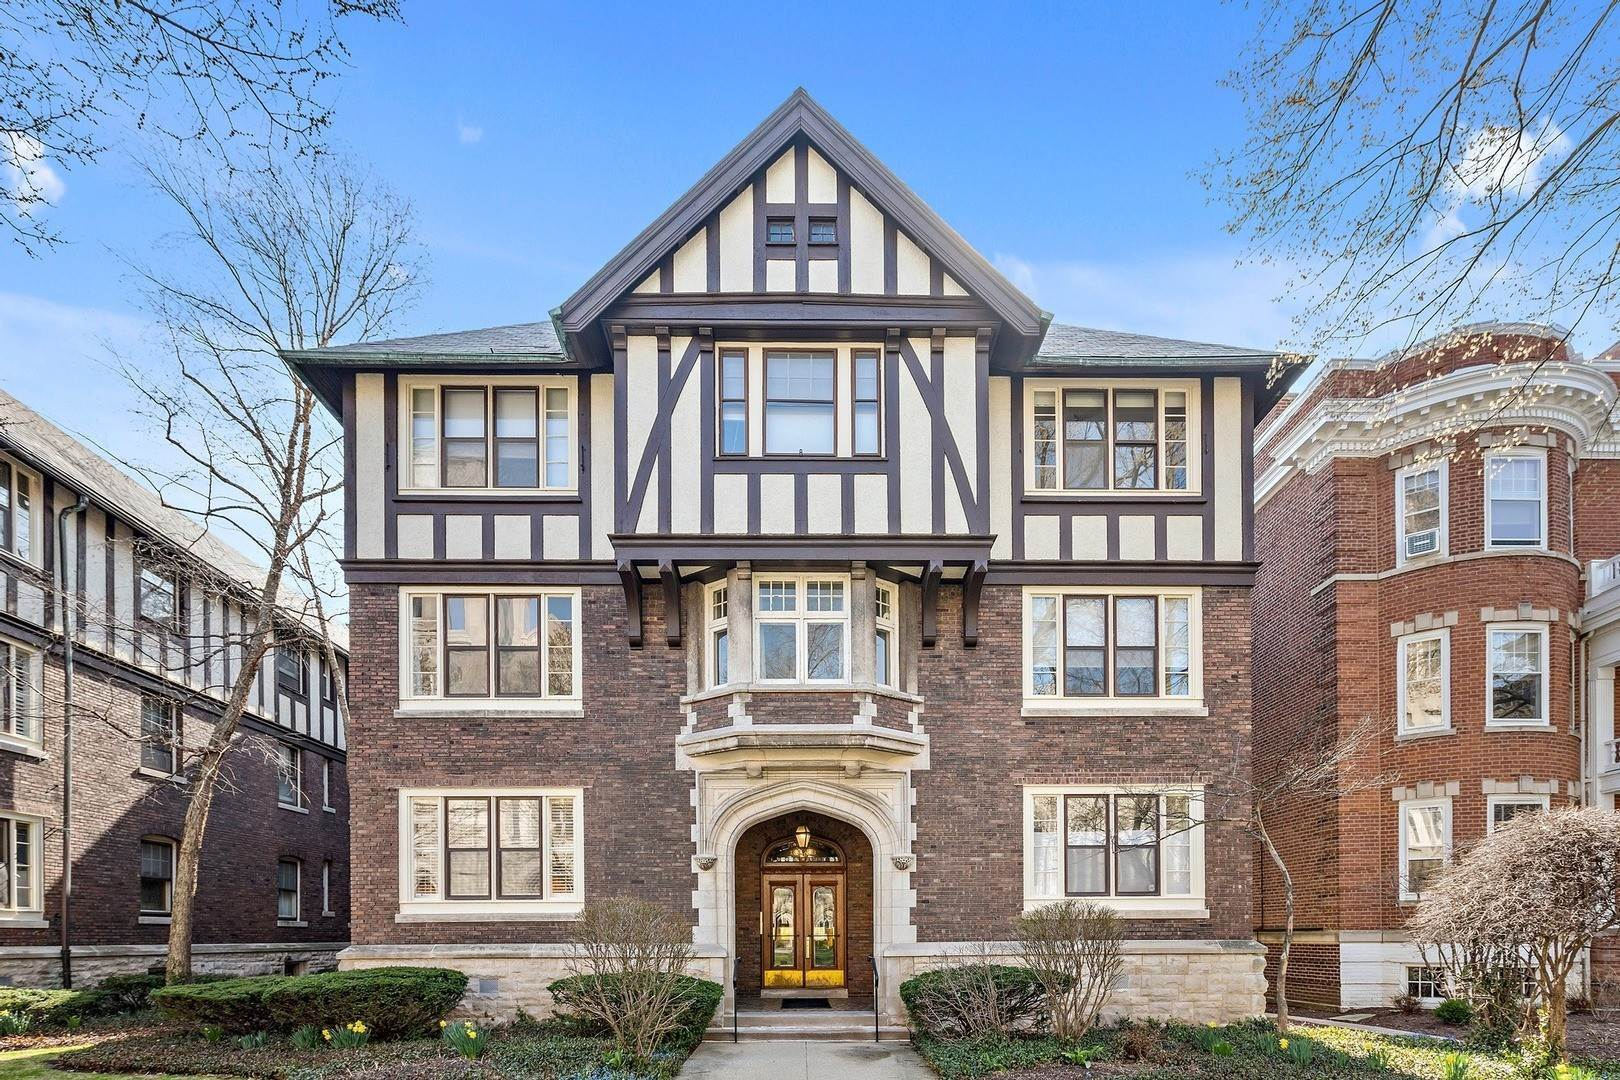 Property for Sale at 1635 Hinman Avenue Evanston, Illinois 60201 United States